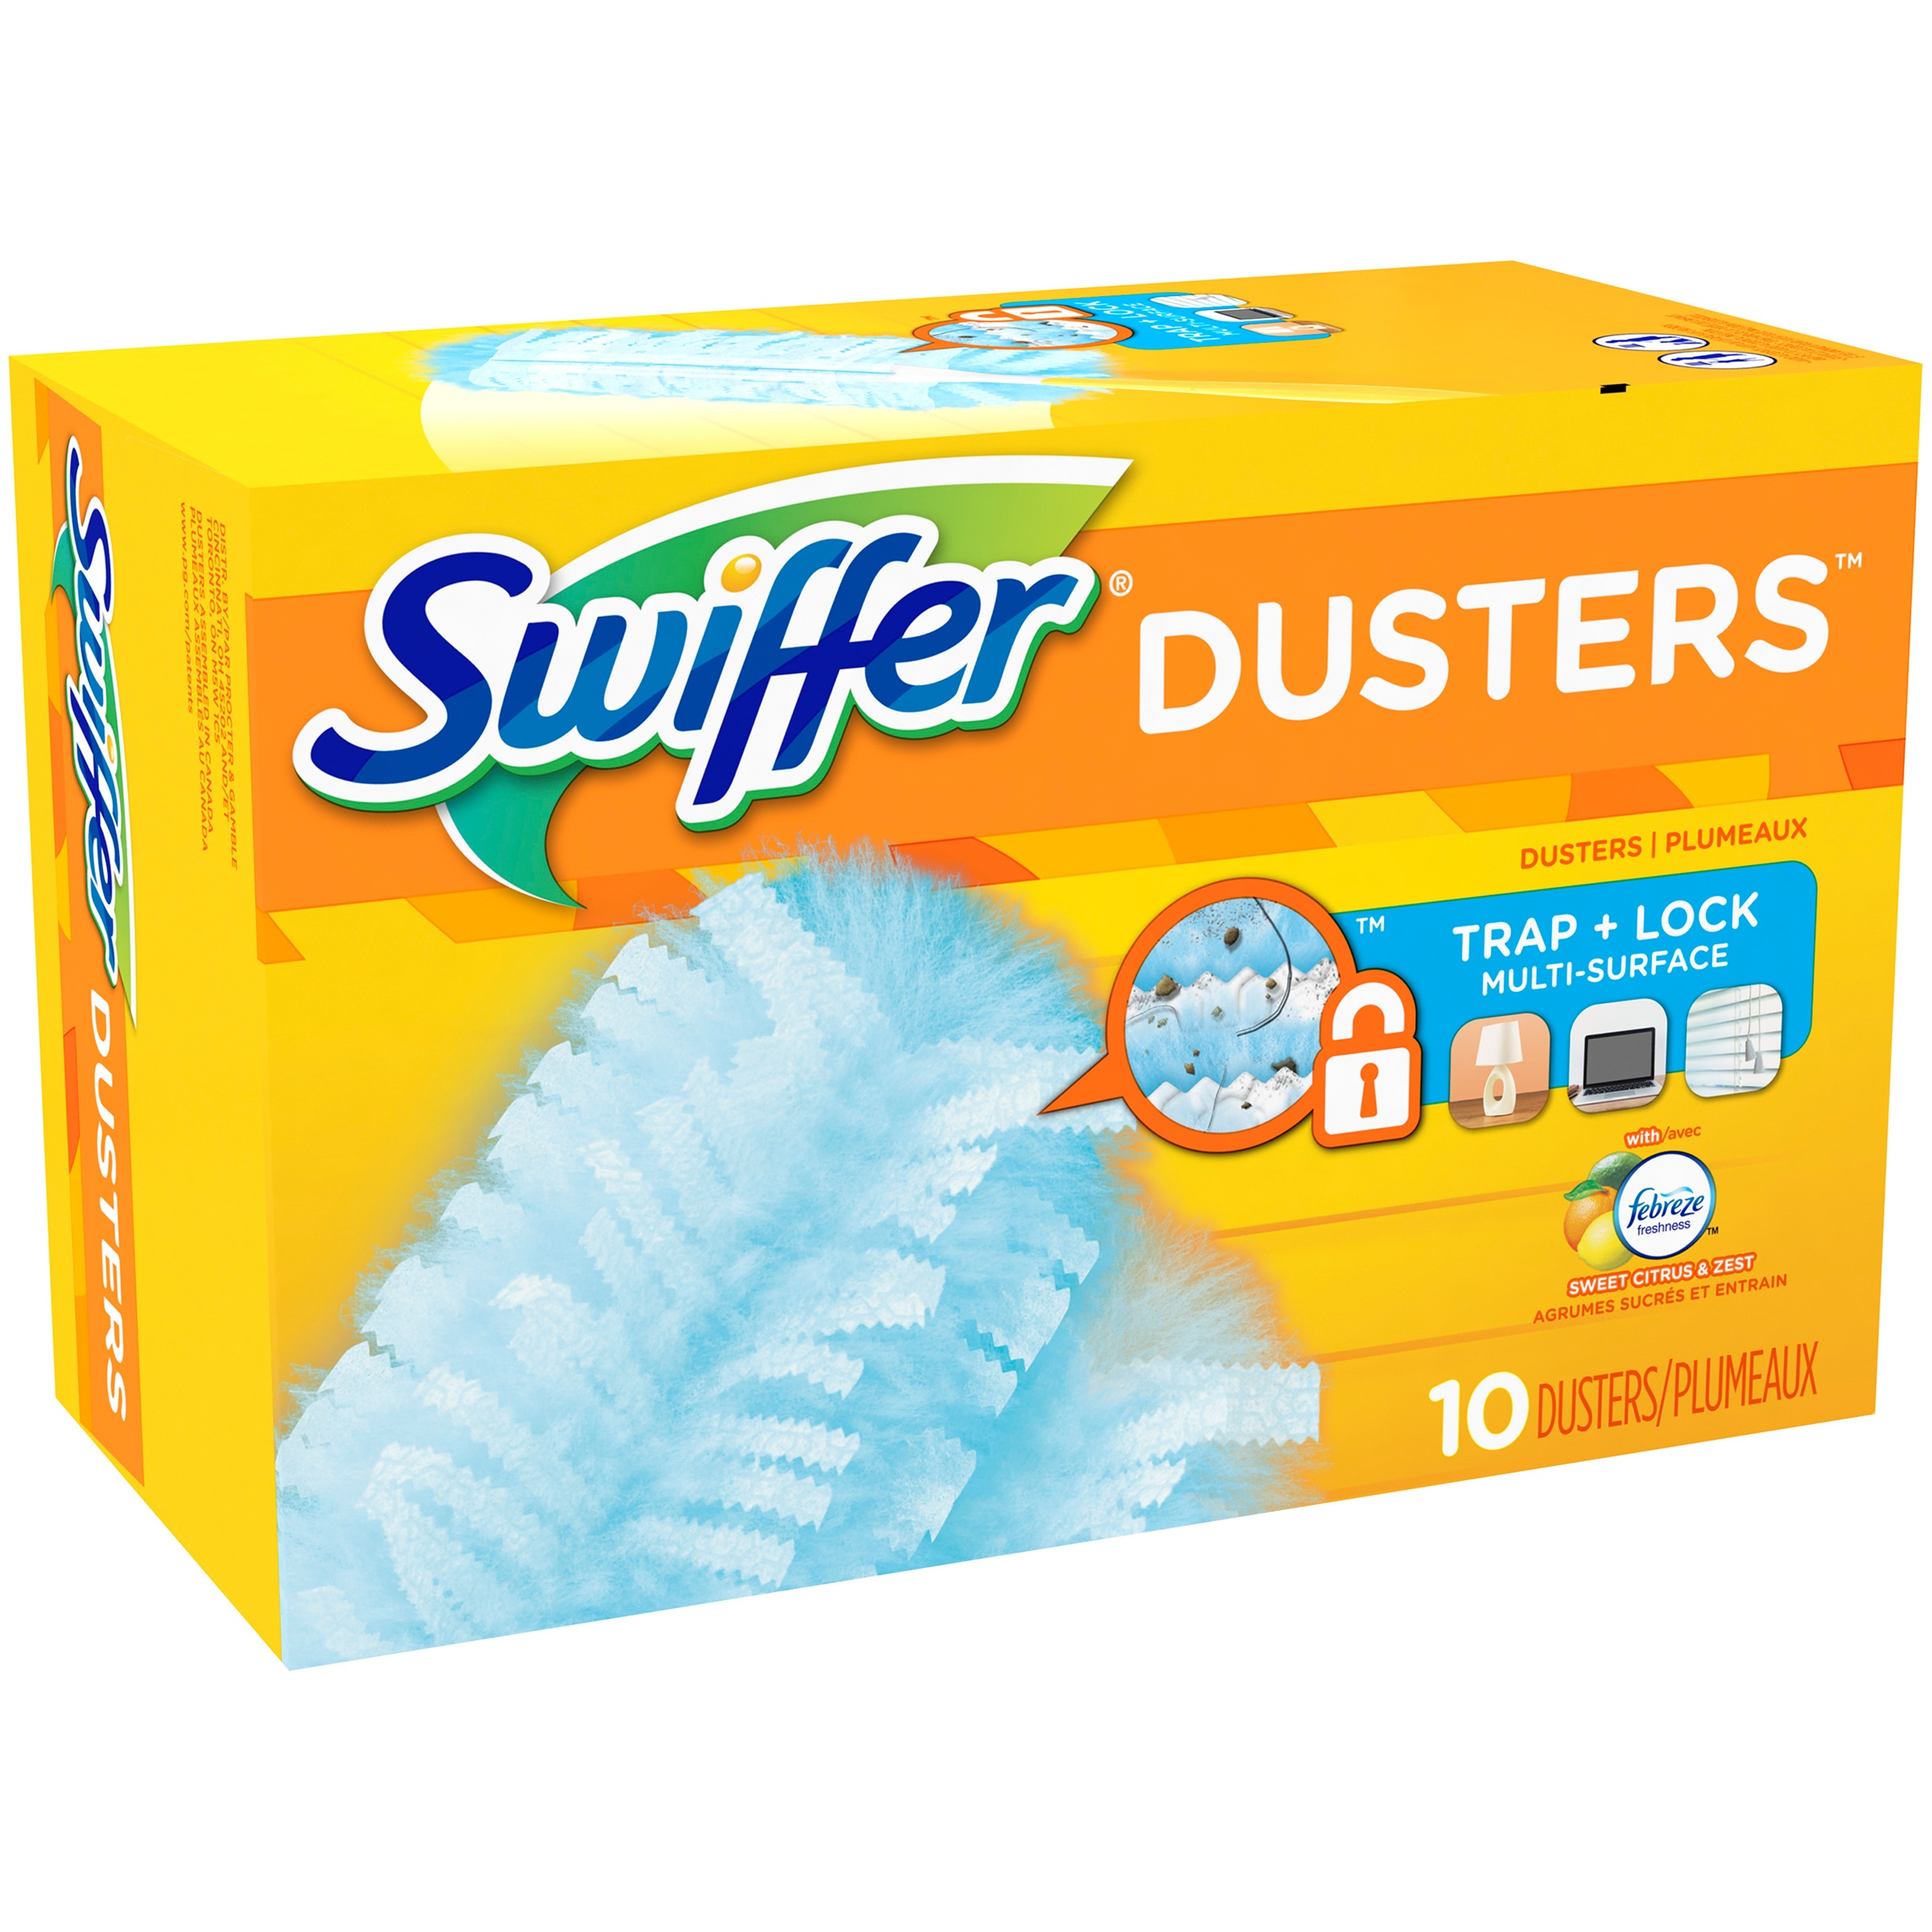 Swiffer 180 Dusters Multi Surface Refills, Citrus & Zest scent, 10 Count